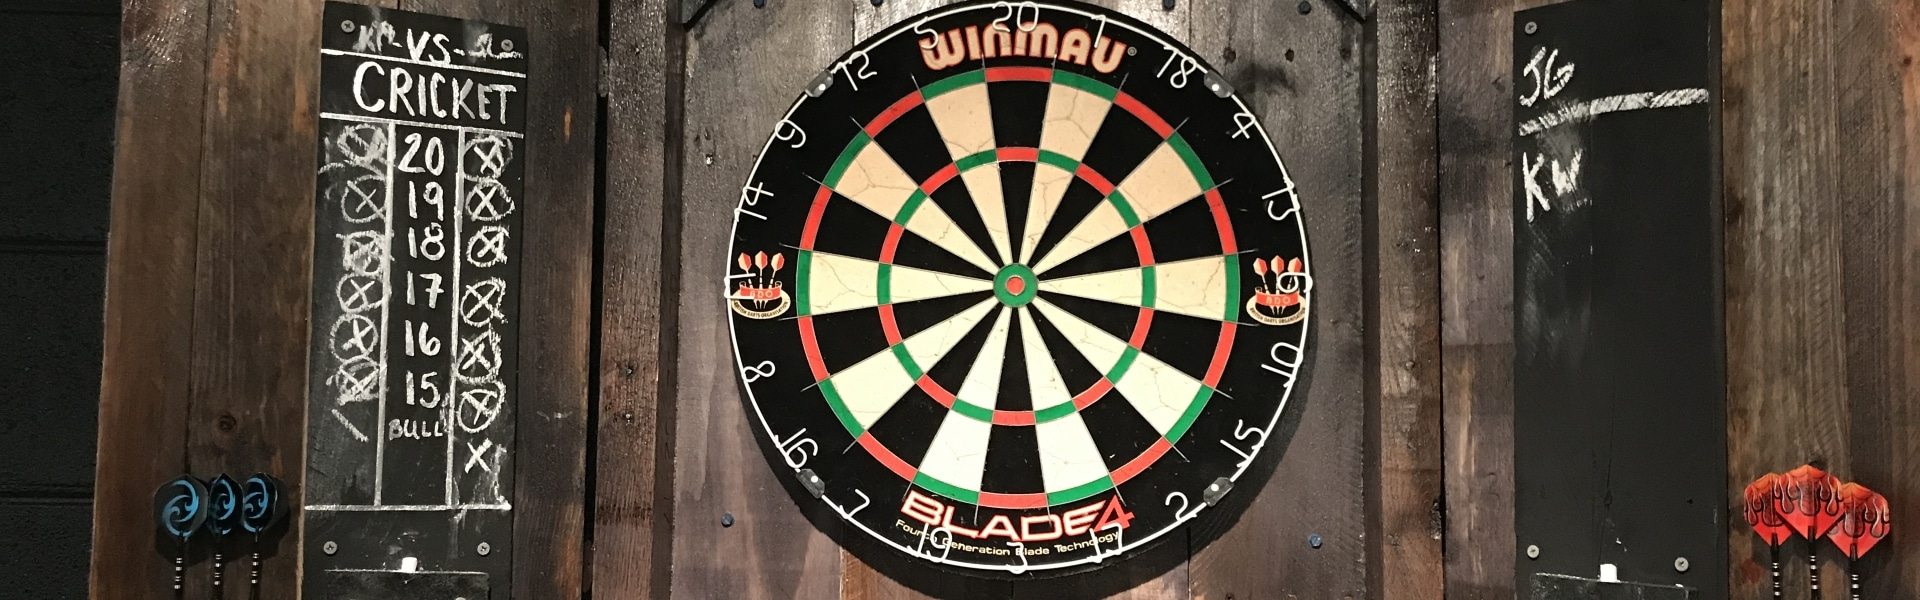 Best Dartboards Reviewed in Detail